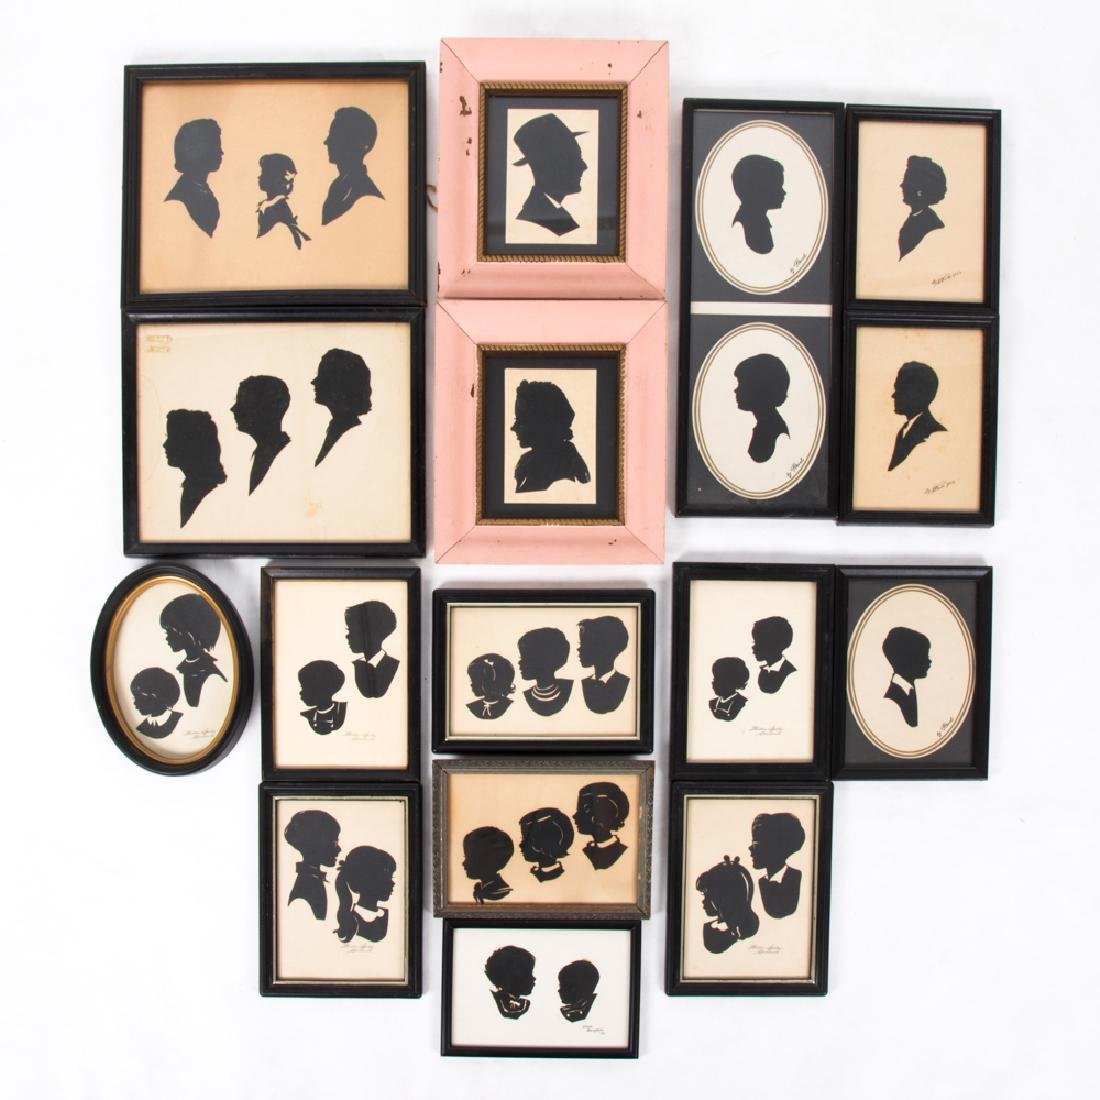 A Collection of Sixteen Cut Paper Silhouettes by